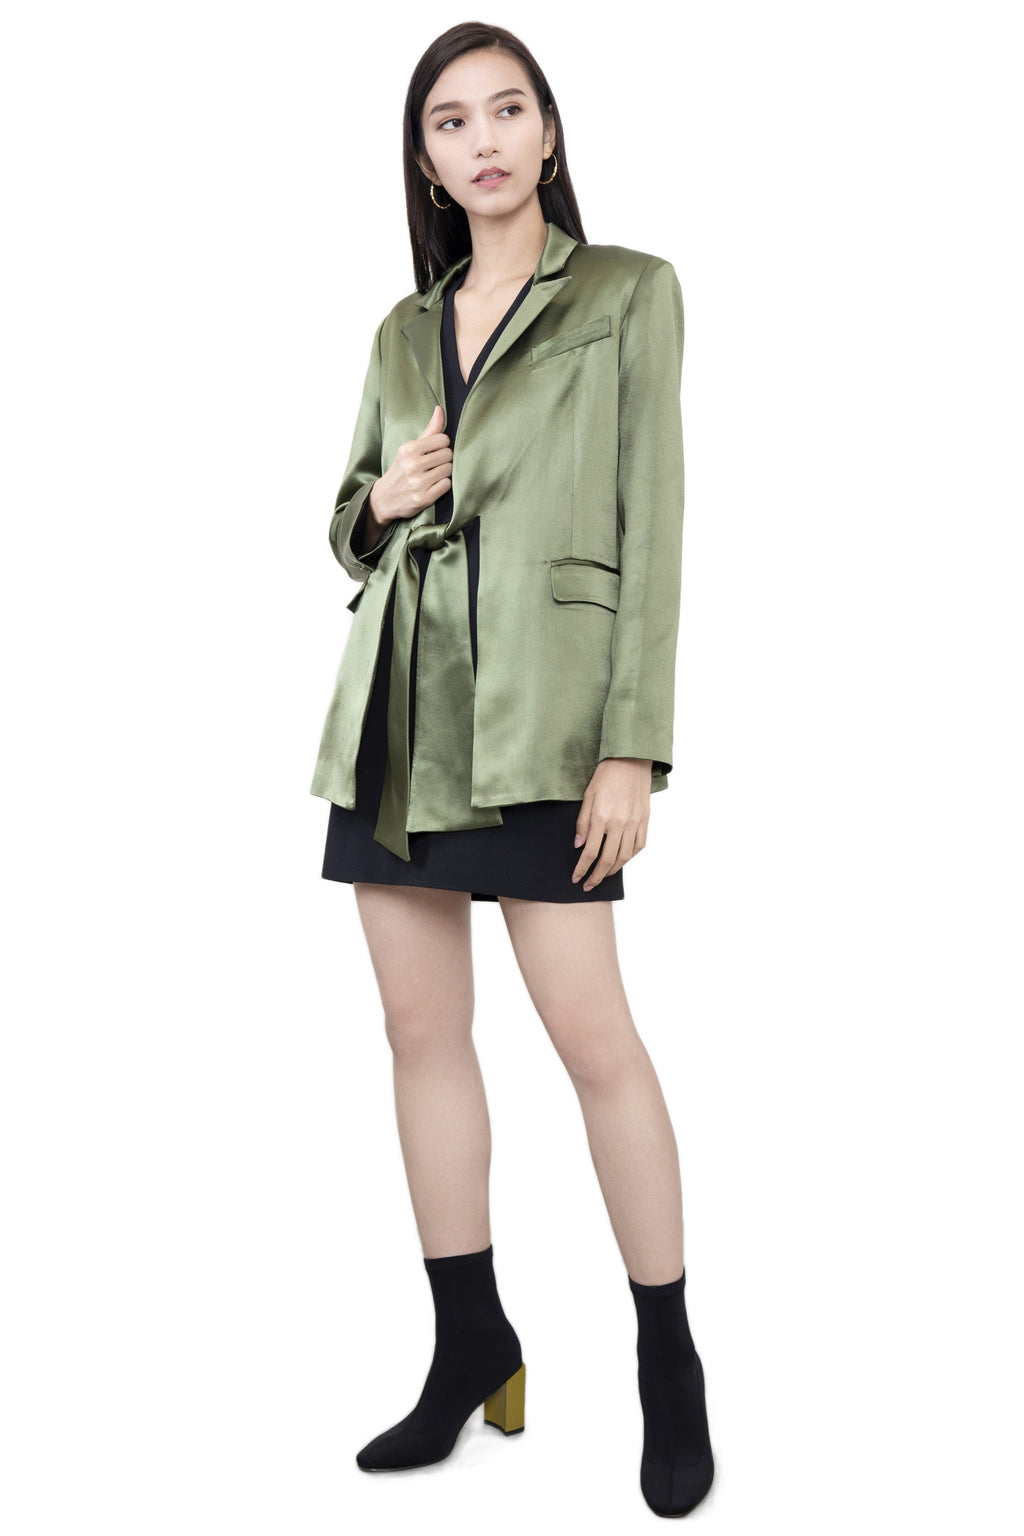 ATELIER MISS LU astrid green jacket